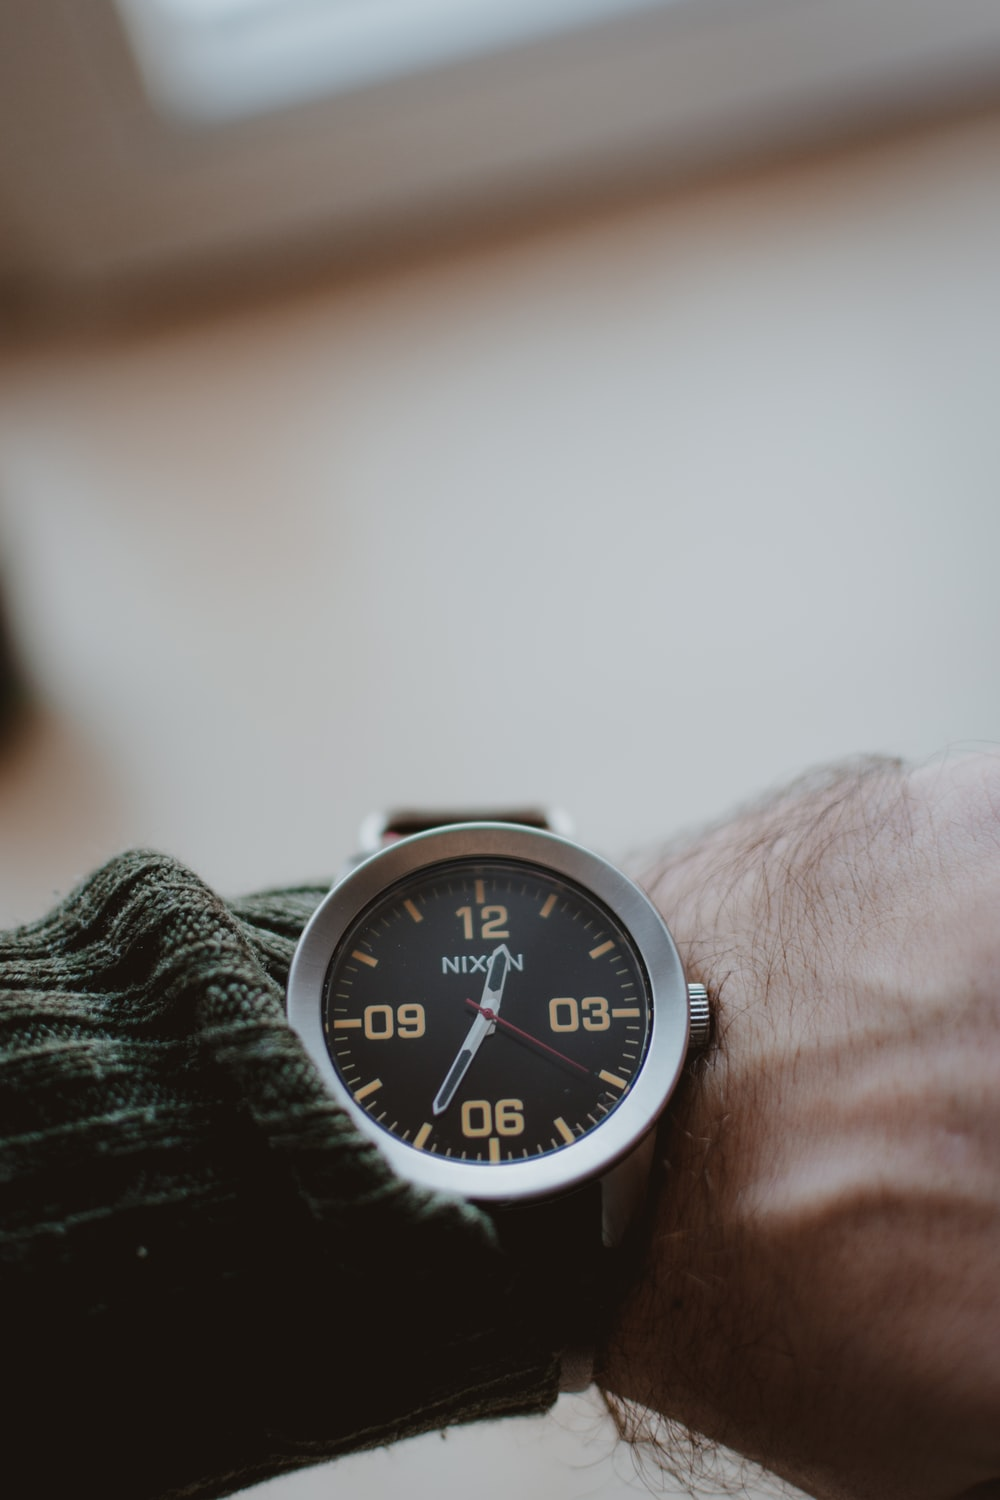 round black and silver-colored analog watch